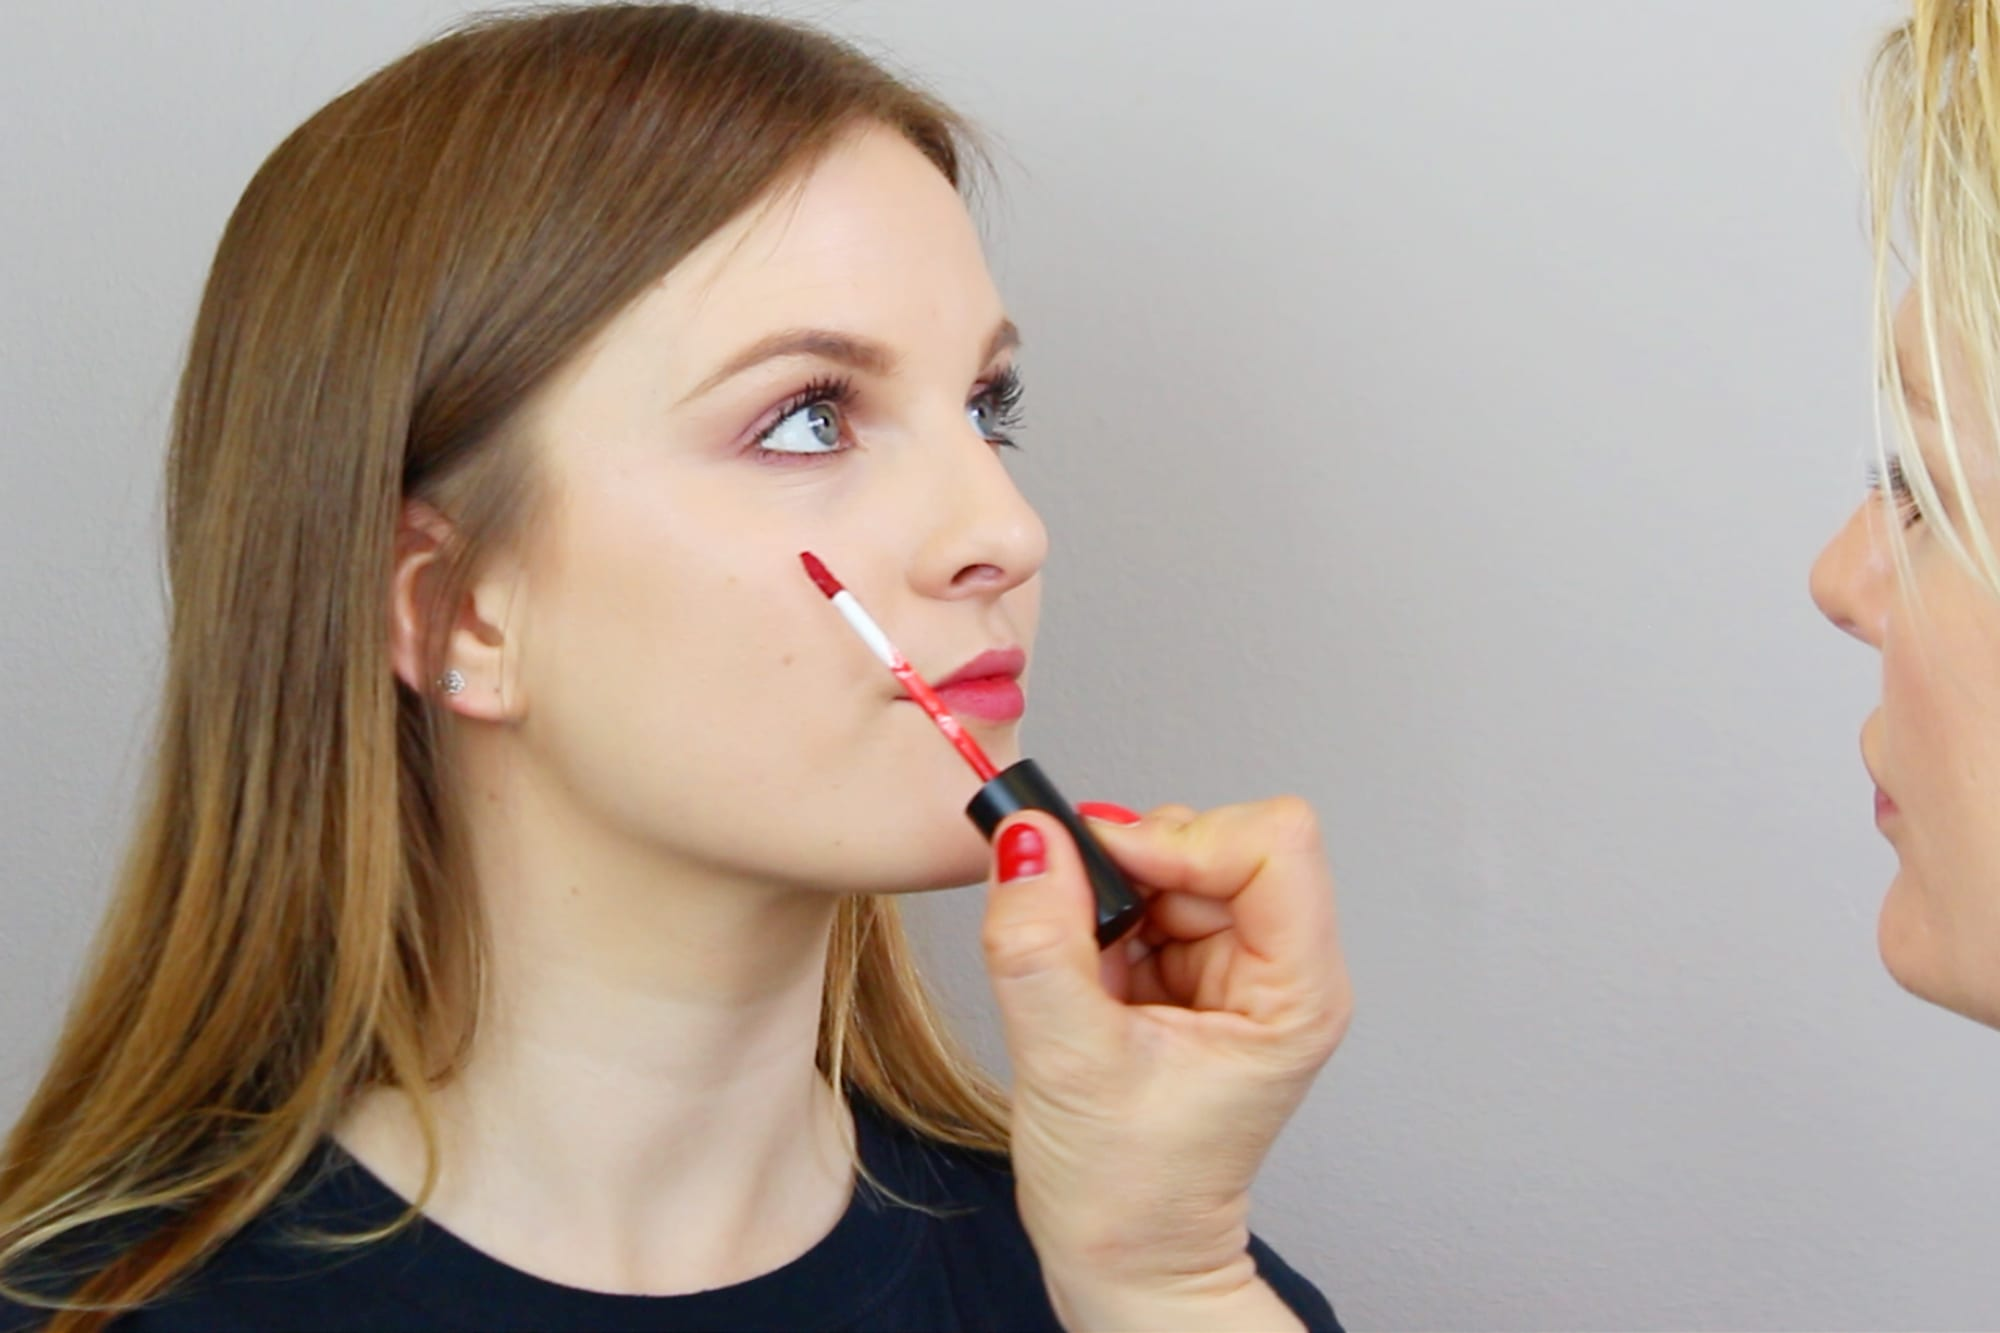 Beauty School: How To Apply Lip & Cheek Stain